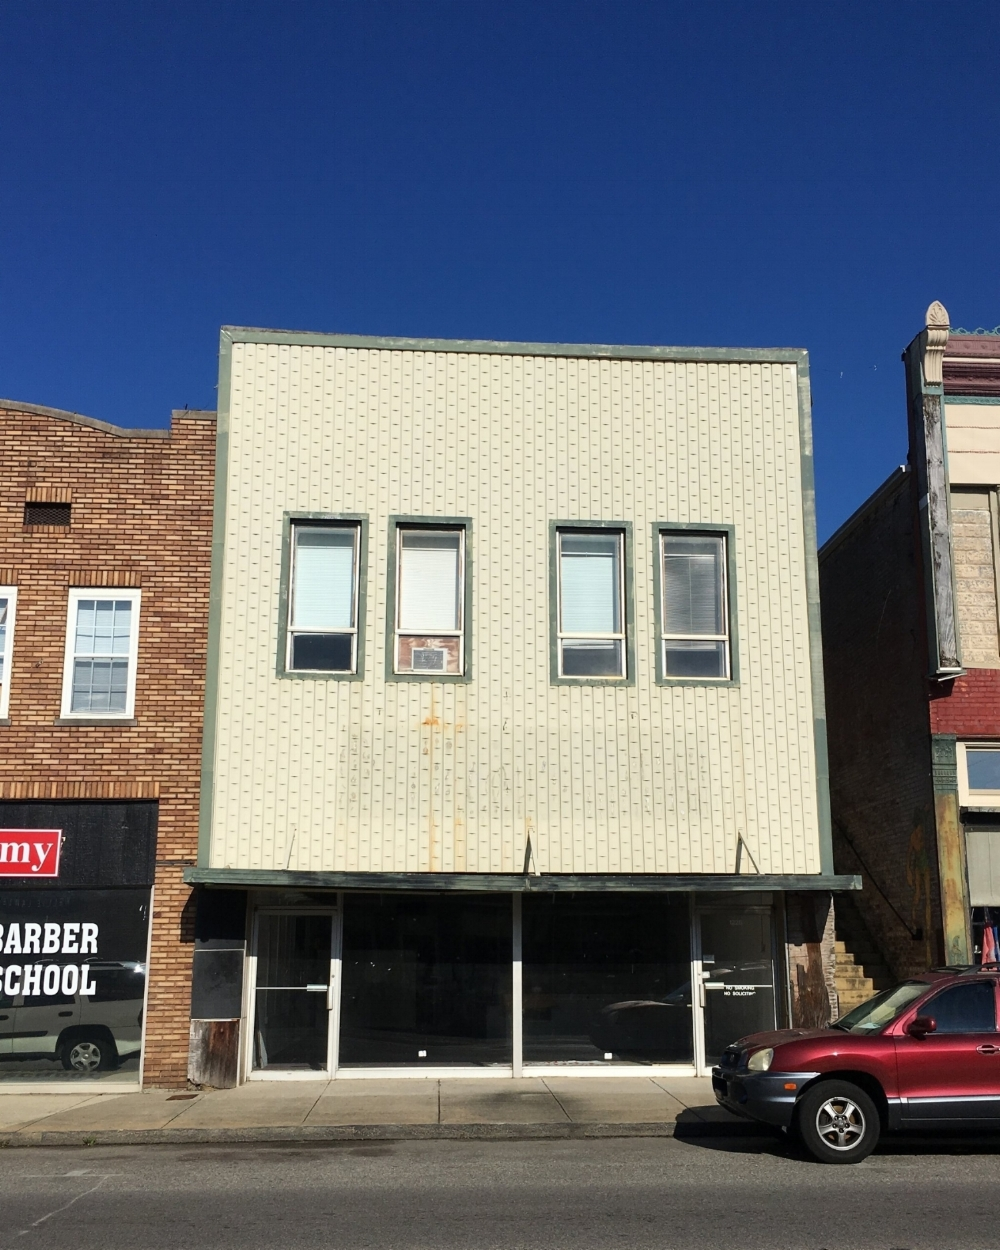 1228 Noble Street - Year Built: 1920Sq. Ft.: 2,619